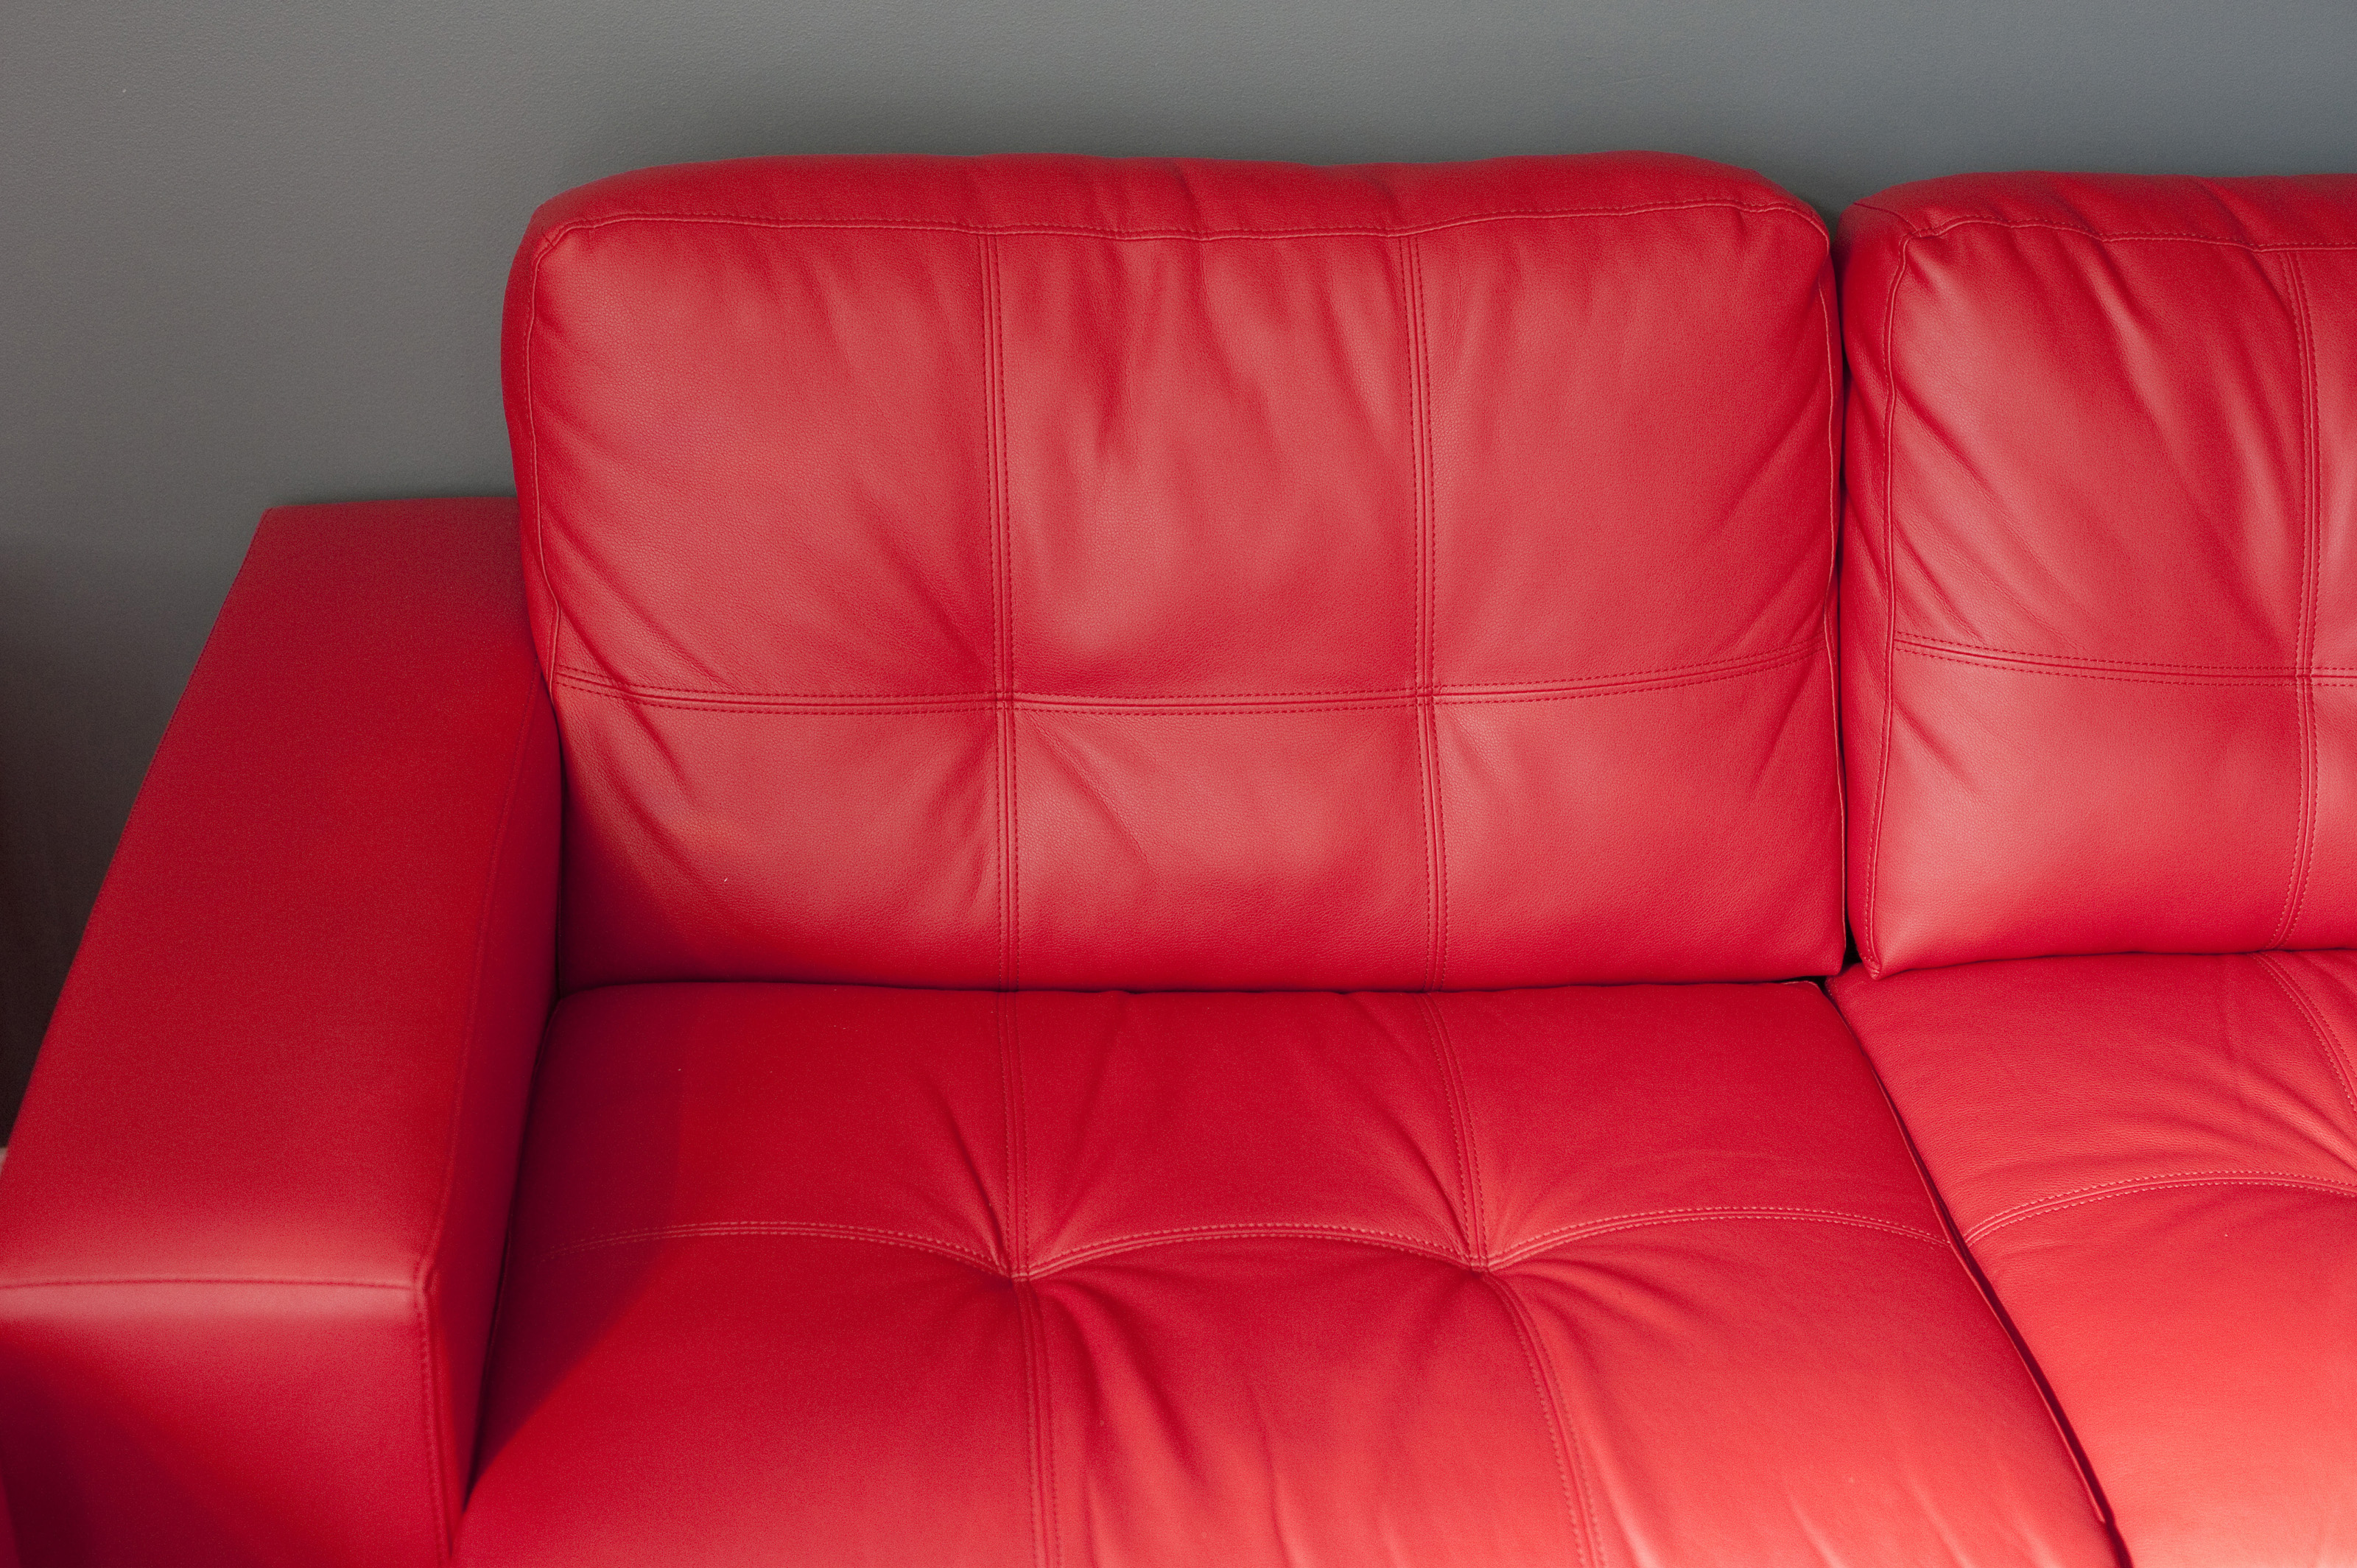 close up elegant glossy red leather sofa in front a gray wall at the living room